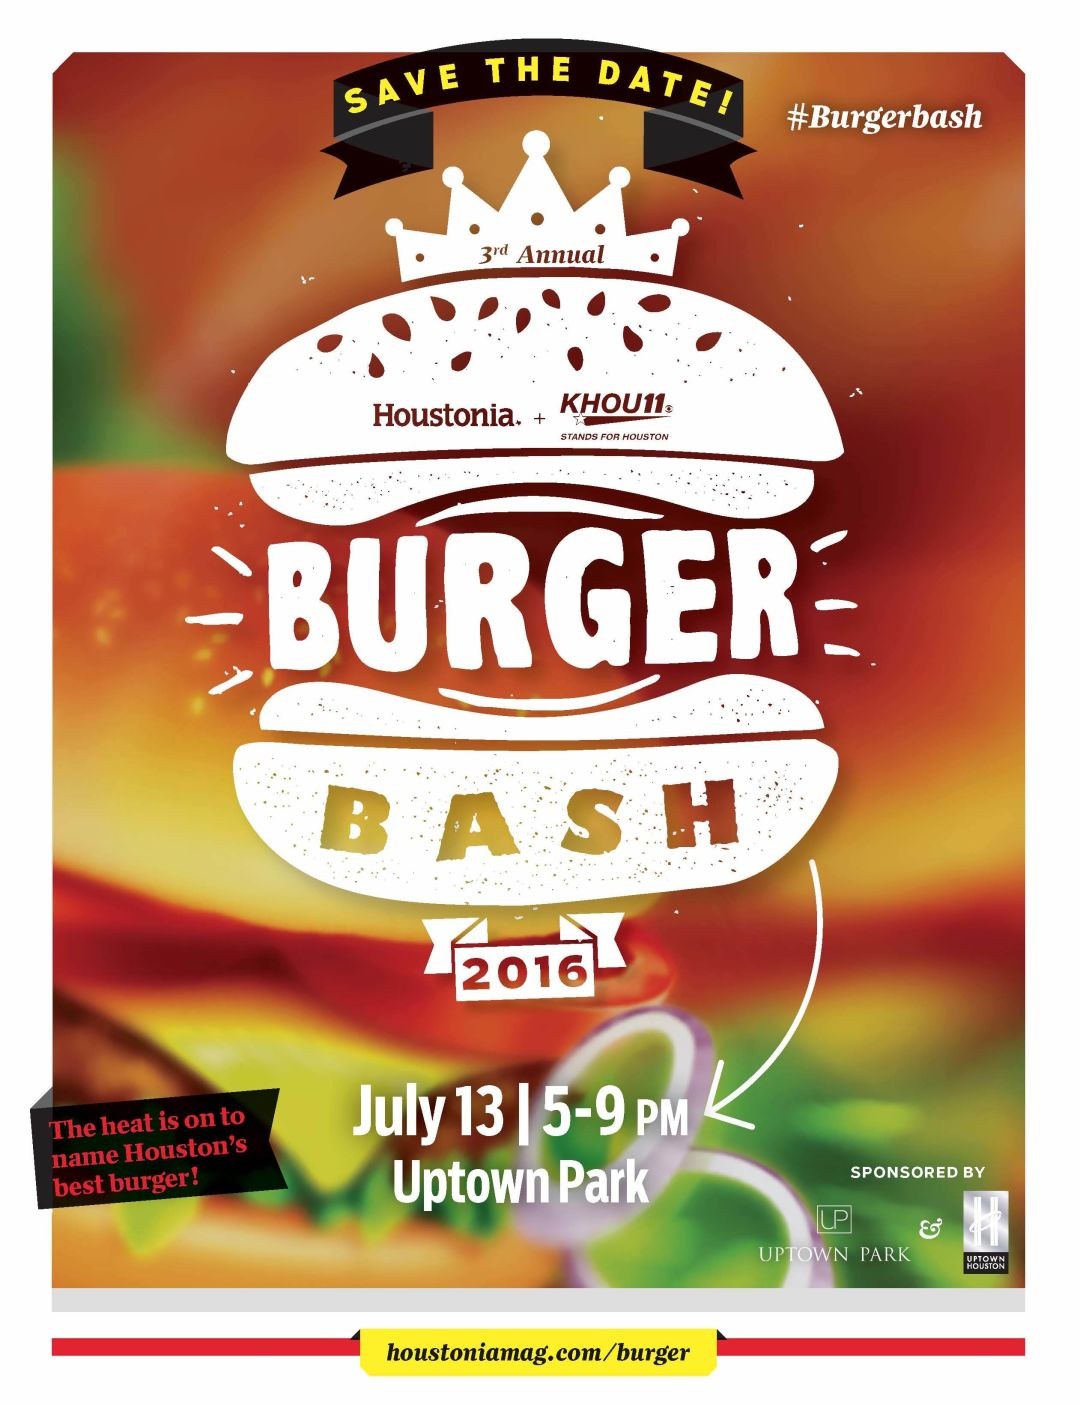 Burgerbash2016 fp may2016v2 cqgau8